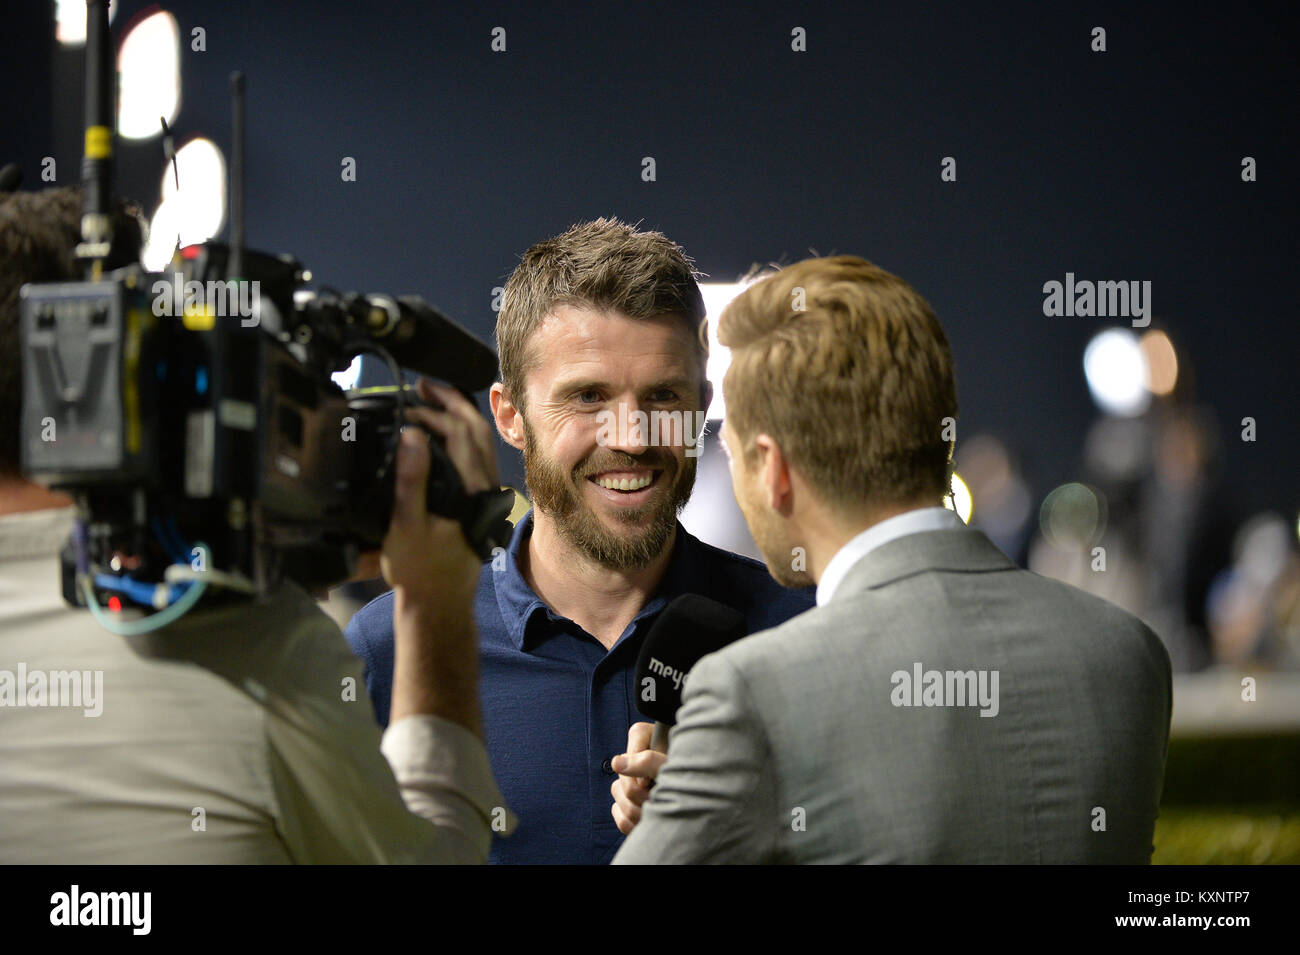 Dubai, UAE. 11th January 2018. Michael Carrick, captain of the Manchester United football club, interacts with media - Stock Image